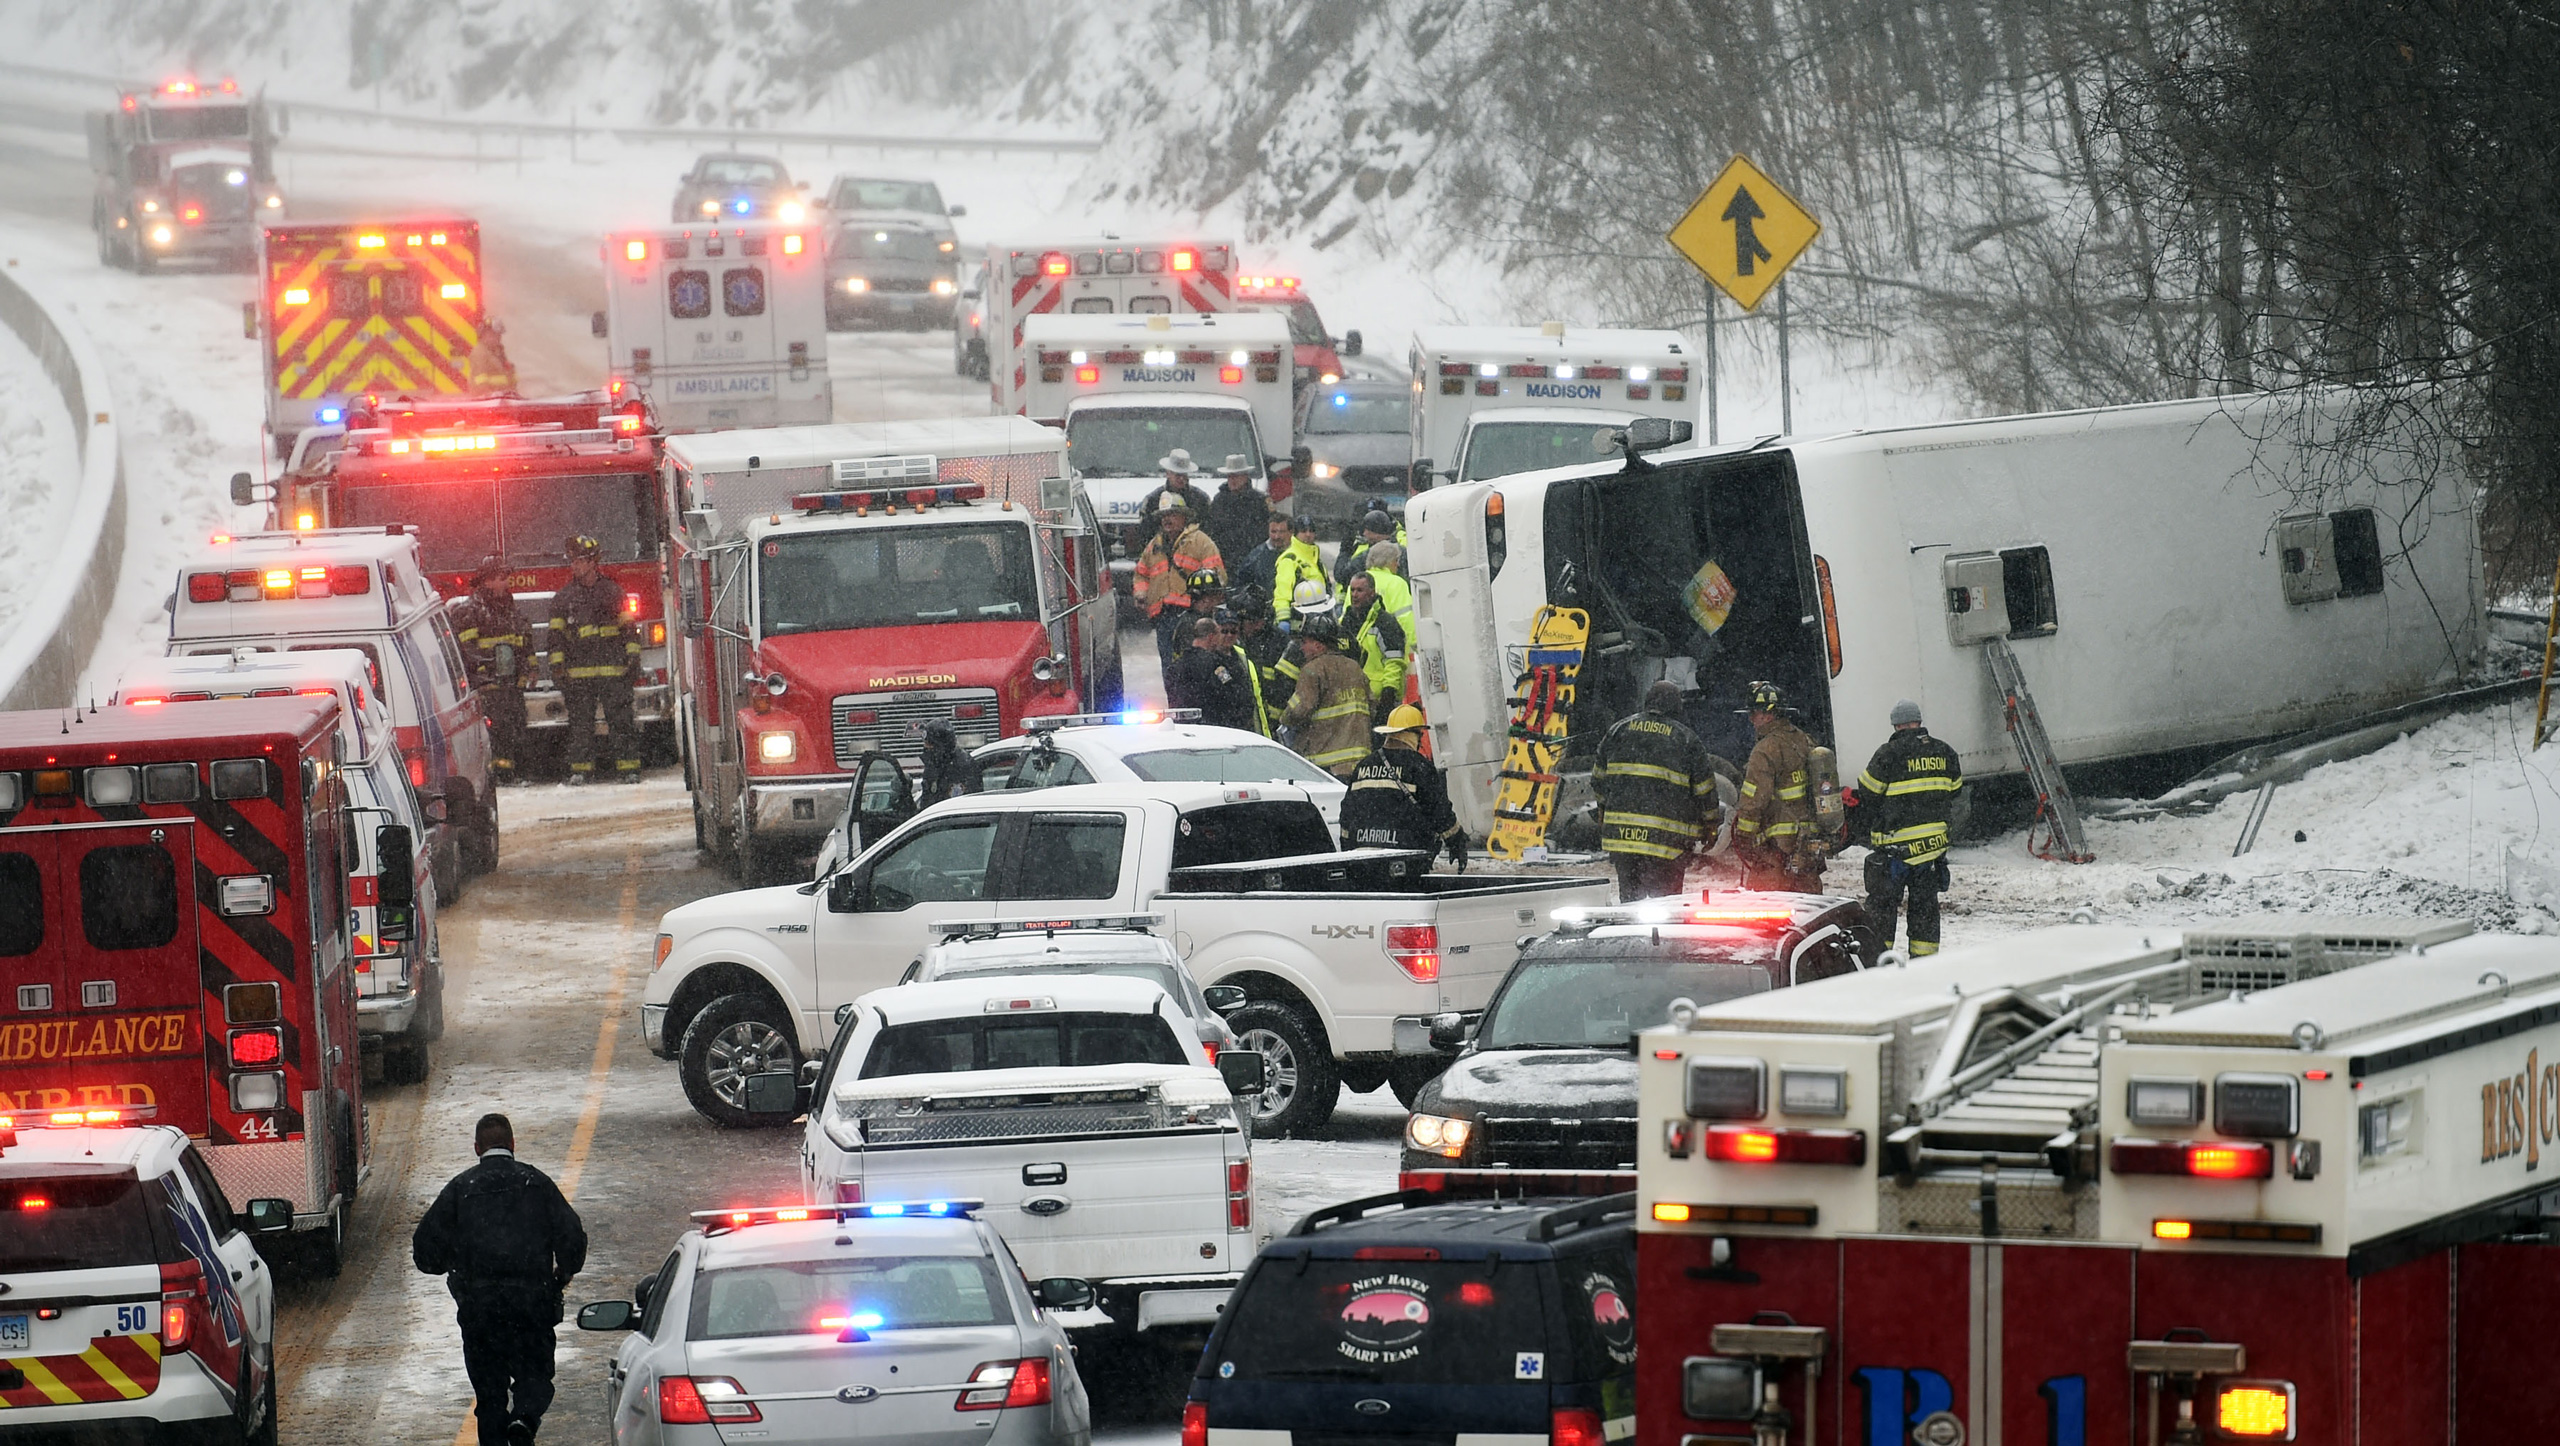 Emergency responders work at the scene of a tour bus rollover on Interstate 95 in Madison, Conn., on Feb. 8, 2016.